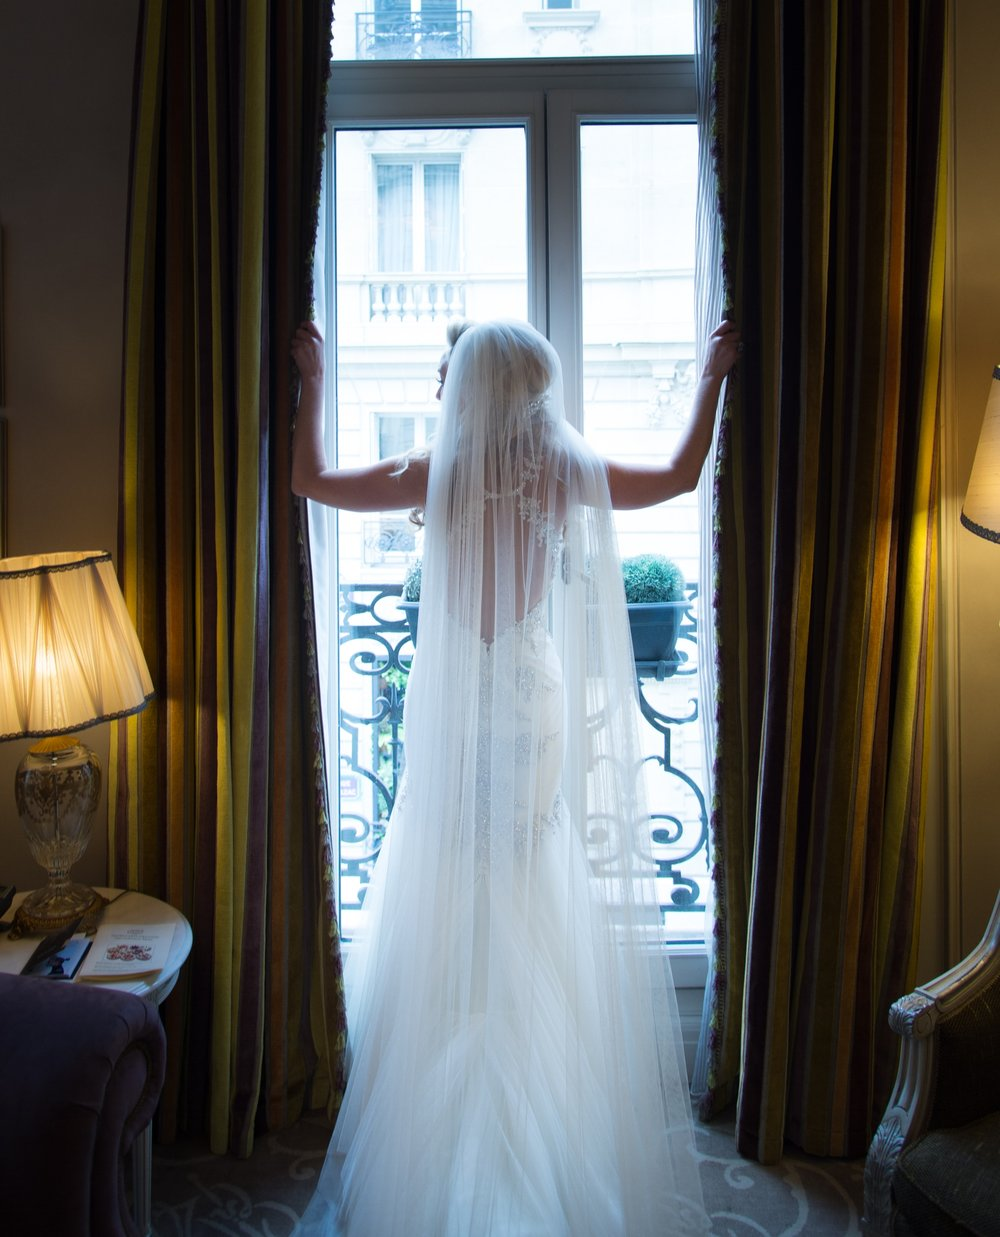 Paris wedding dress 001.jpg.jpg